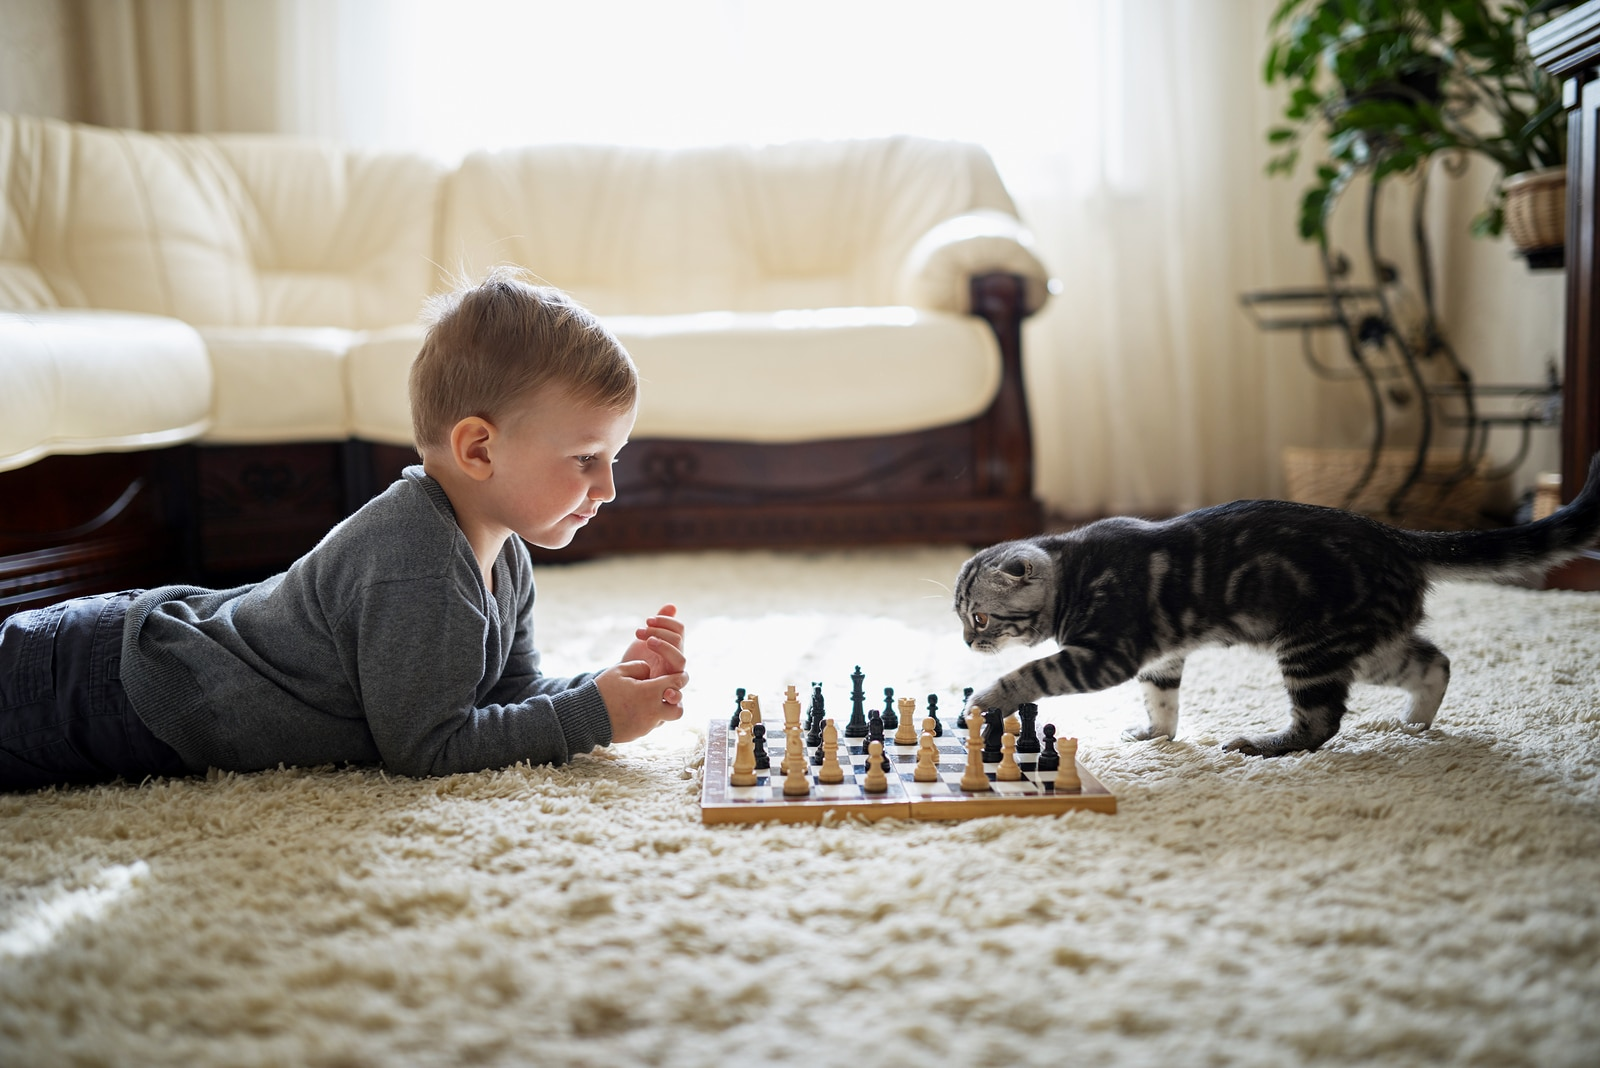 Little boy lies on the ground with a chess board, while a tabby cat paws at one of the pieces.